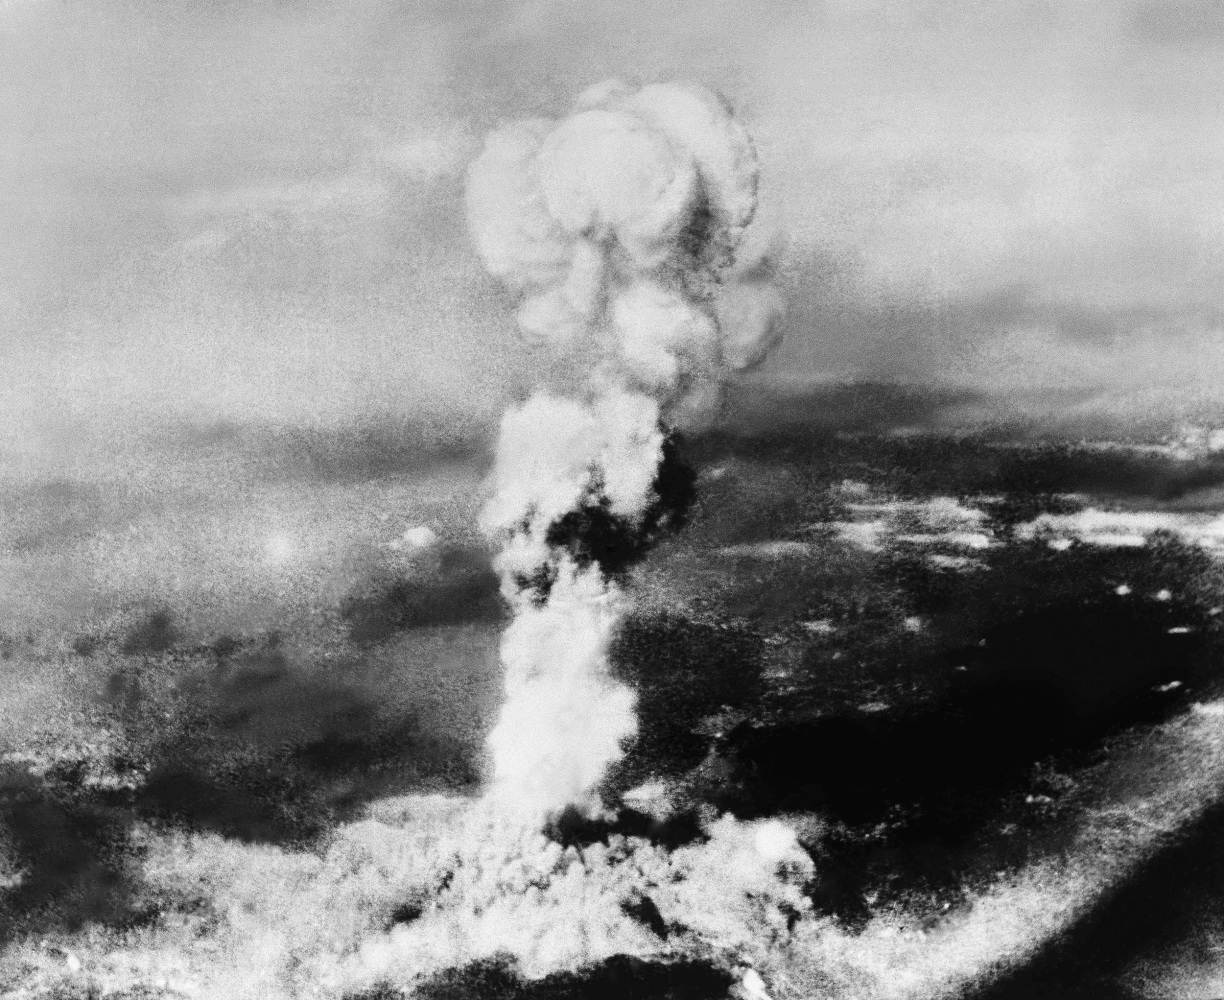 an essay on hiroshima and the atomic bomb Free essay: august 6th, 1945, 70,0000 lives were ended in a matter of seconds the united states had dropped an atomic bomb on the city of hiroshima today.